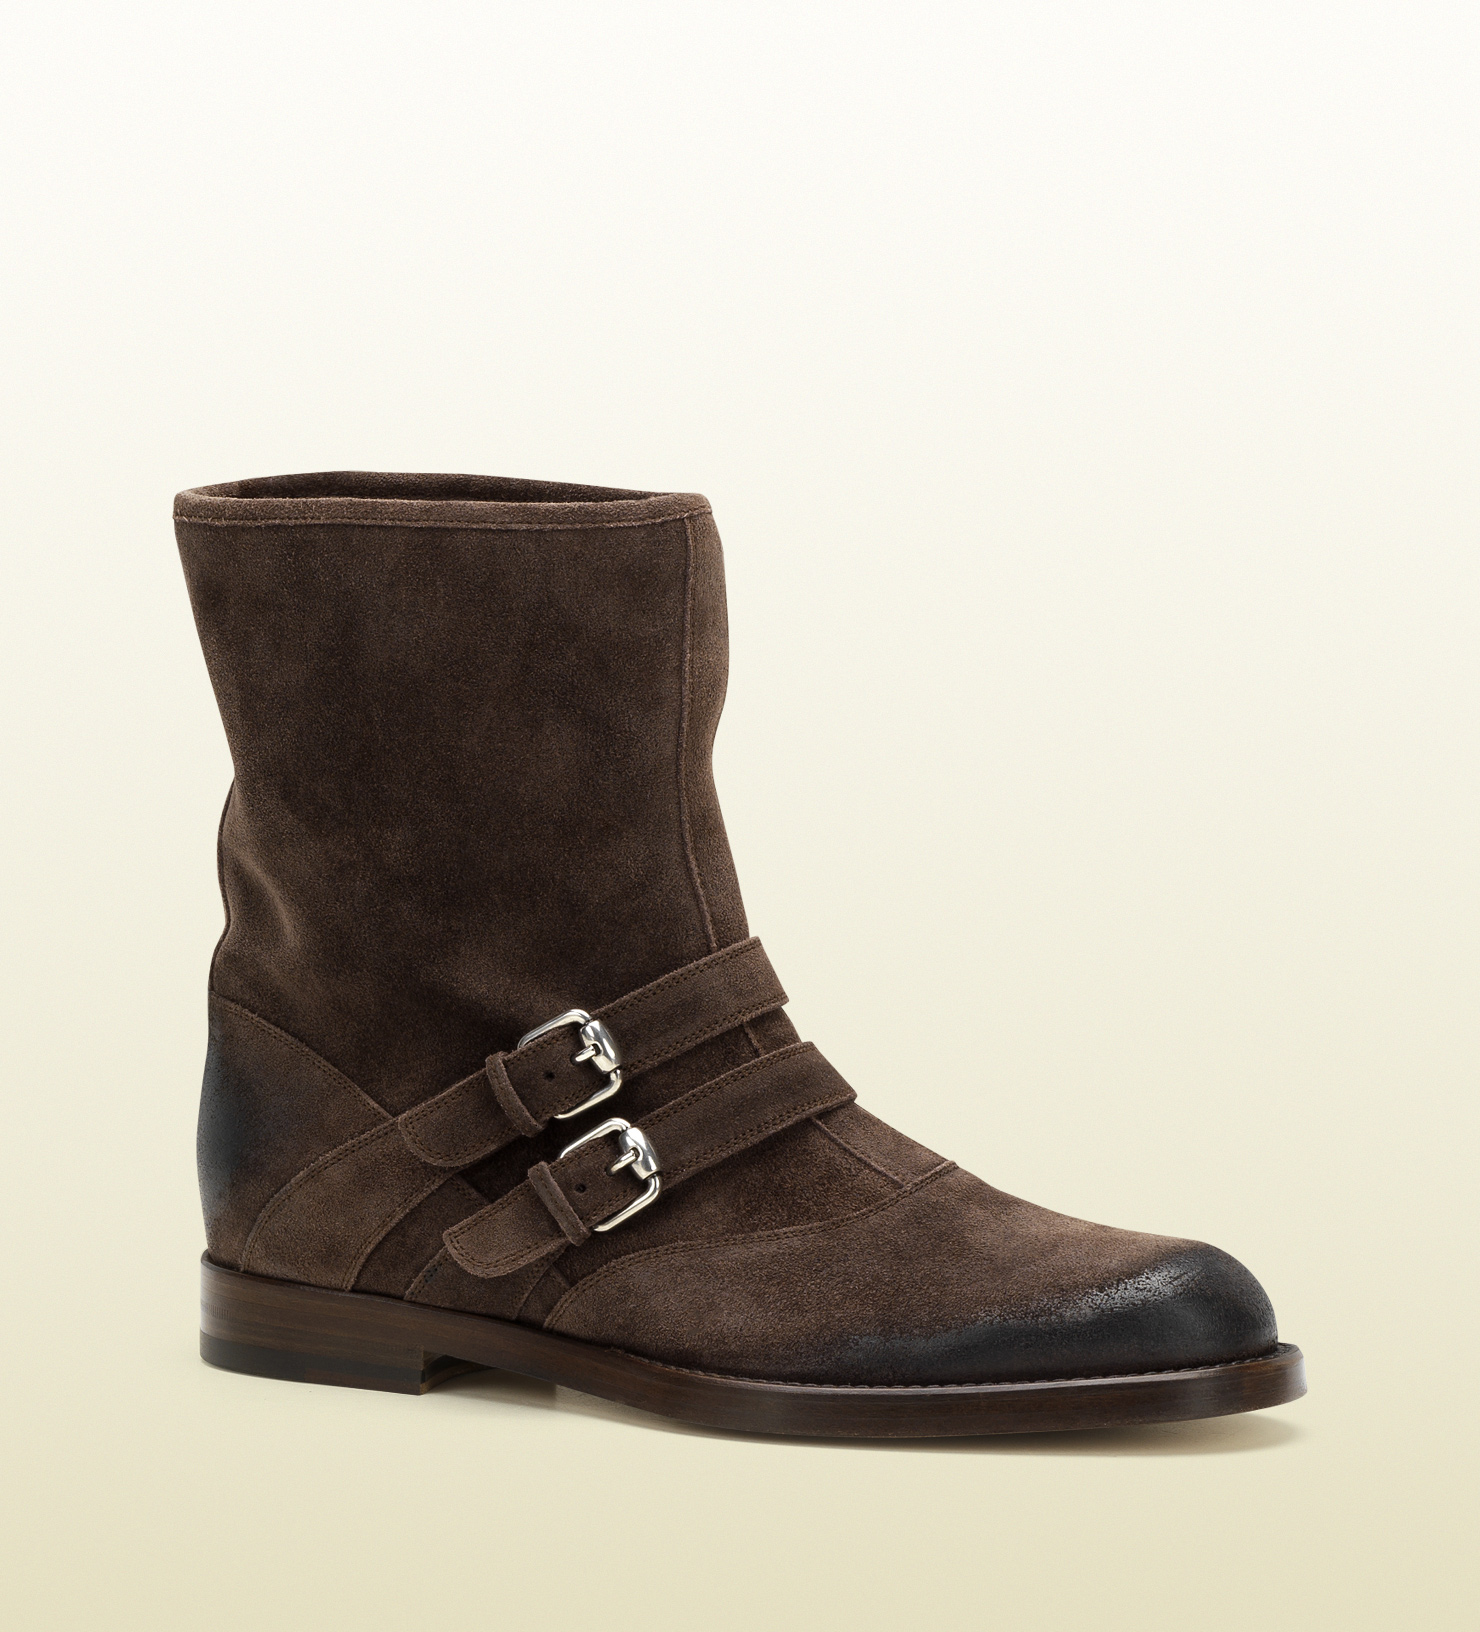 gucci brown shades suede buckle boot in brown for lyst